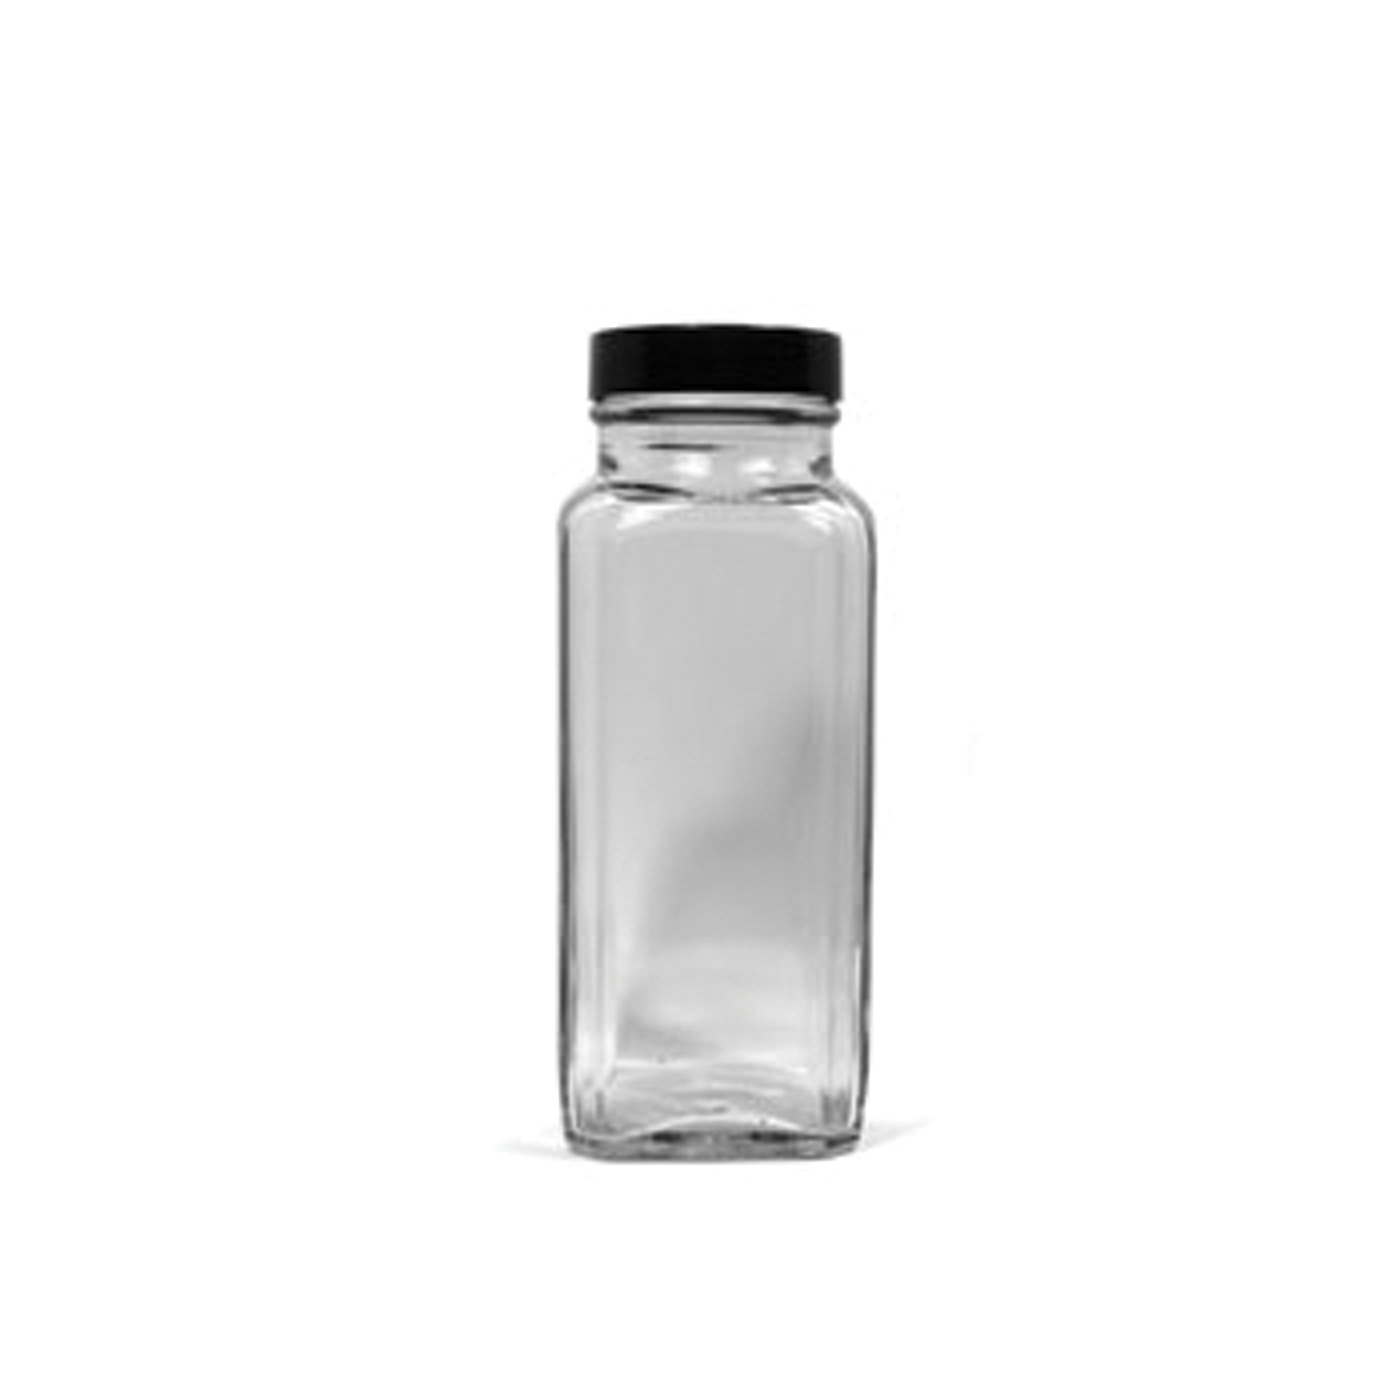 Ps seasoning spices square glass spice jars 8 oz